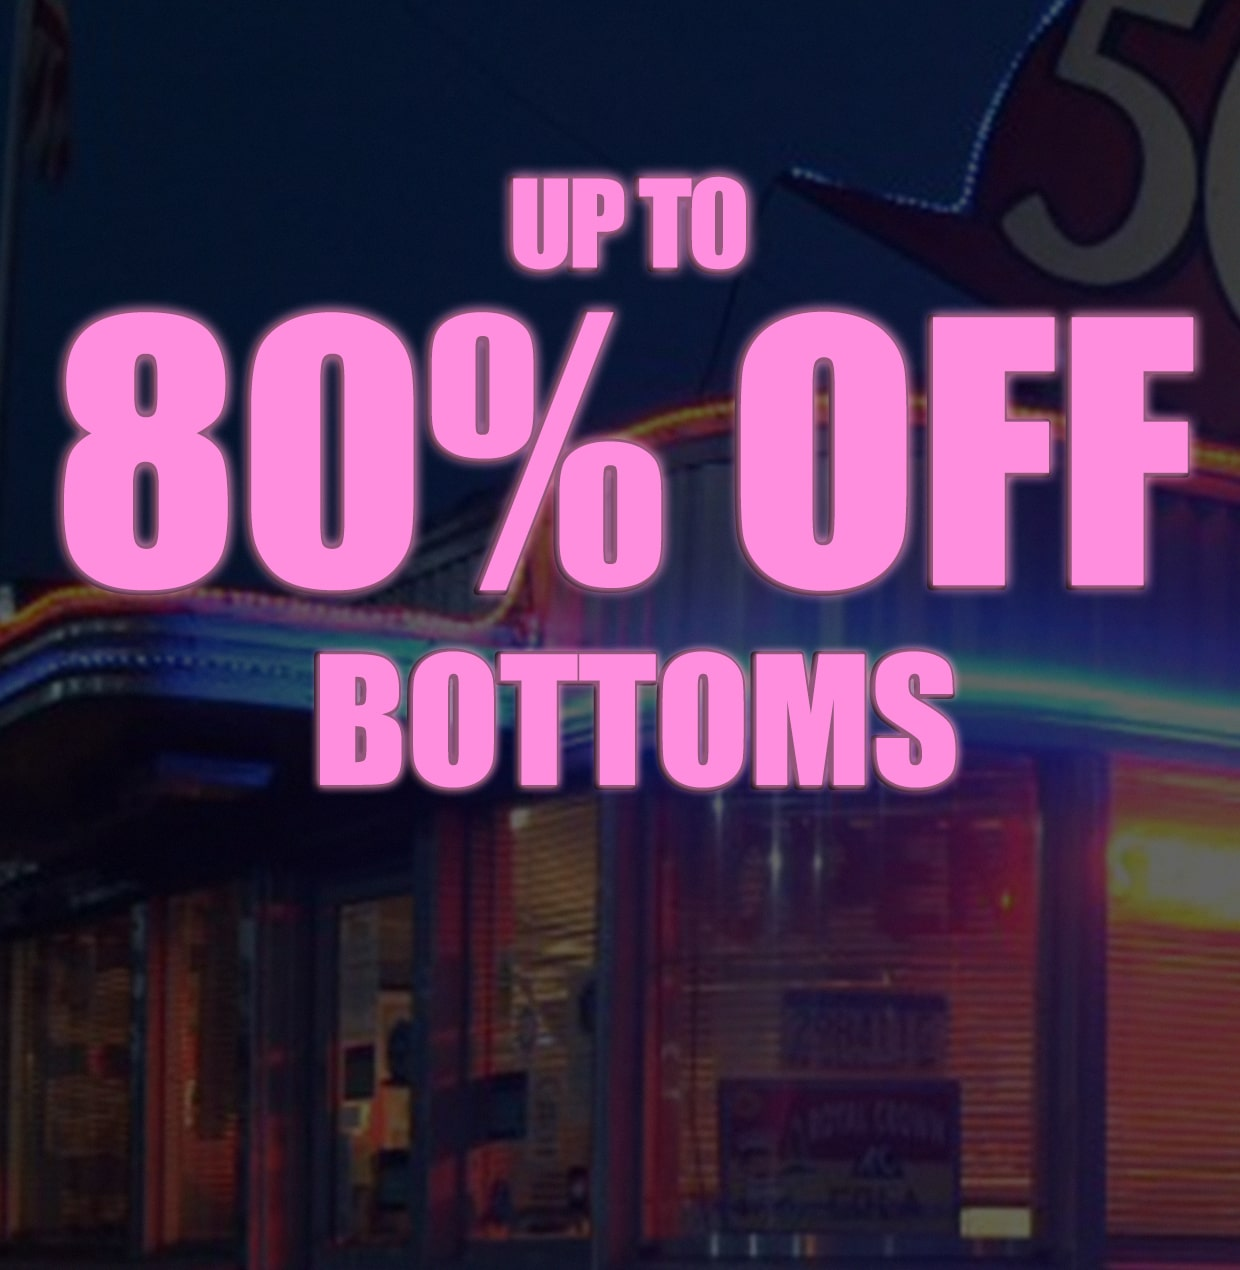 upto 80% off bottoms